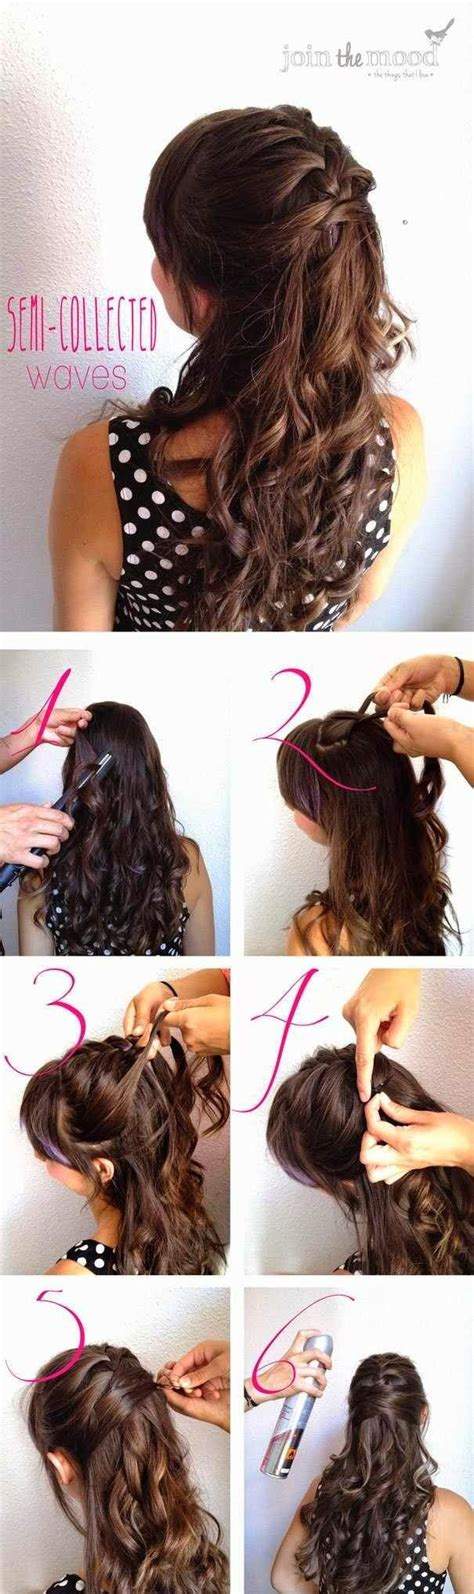 hairstyles for curly hair step by step fashionable half up half down hairstyles hair tutorials